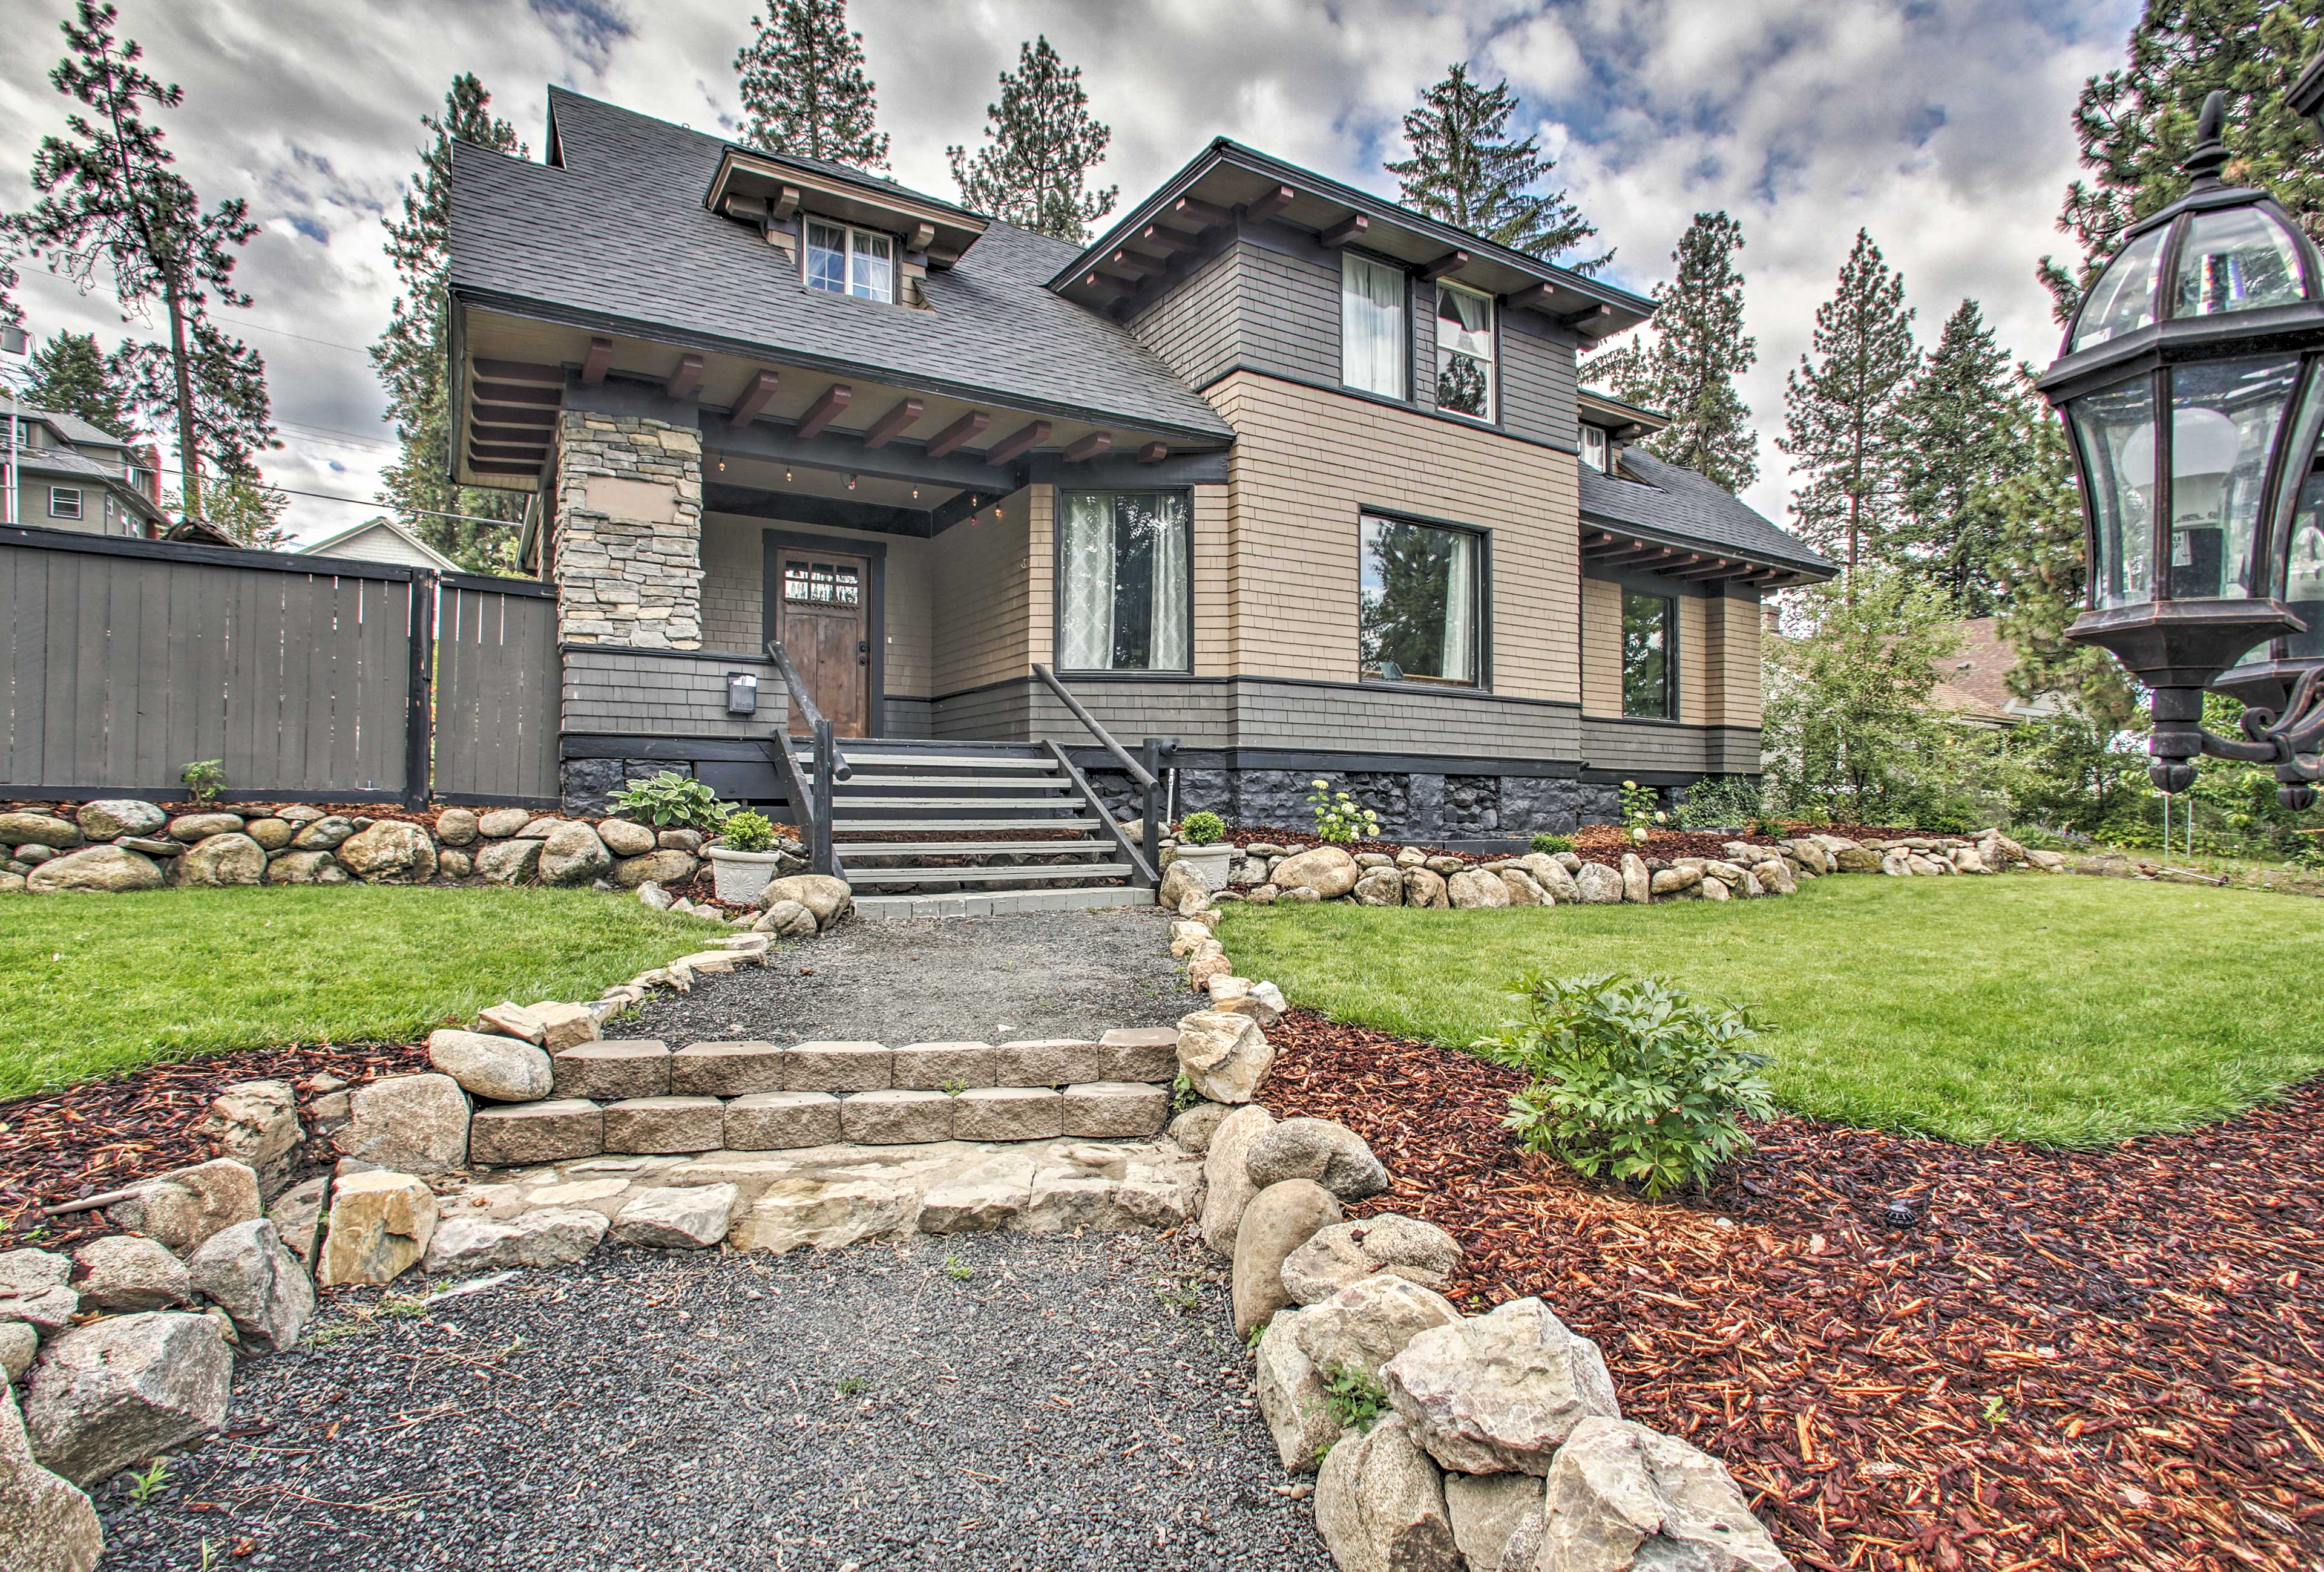 Find a one-of-a-kind vacation rental at this Spokane property!